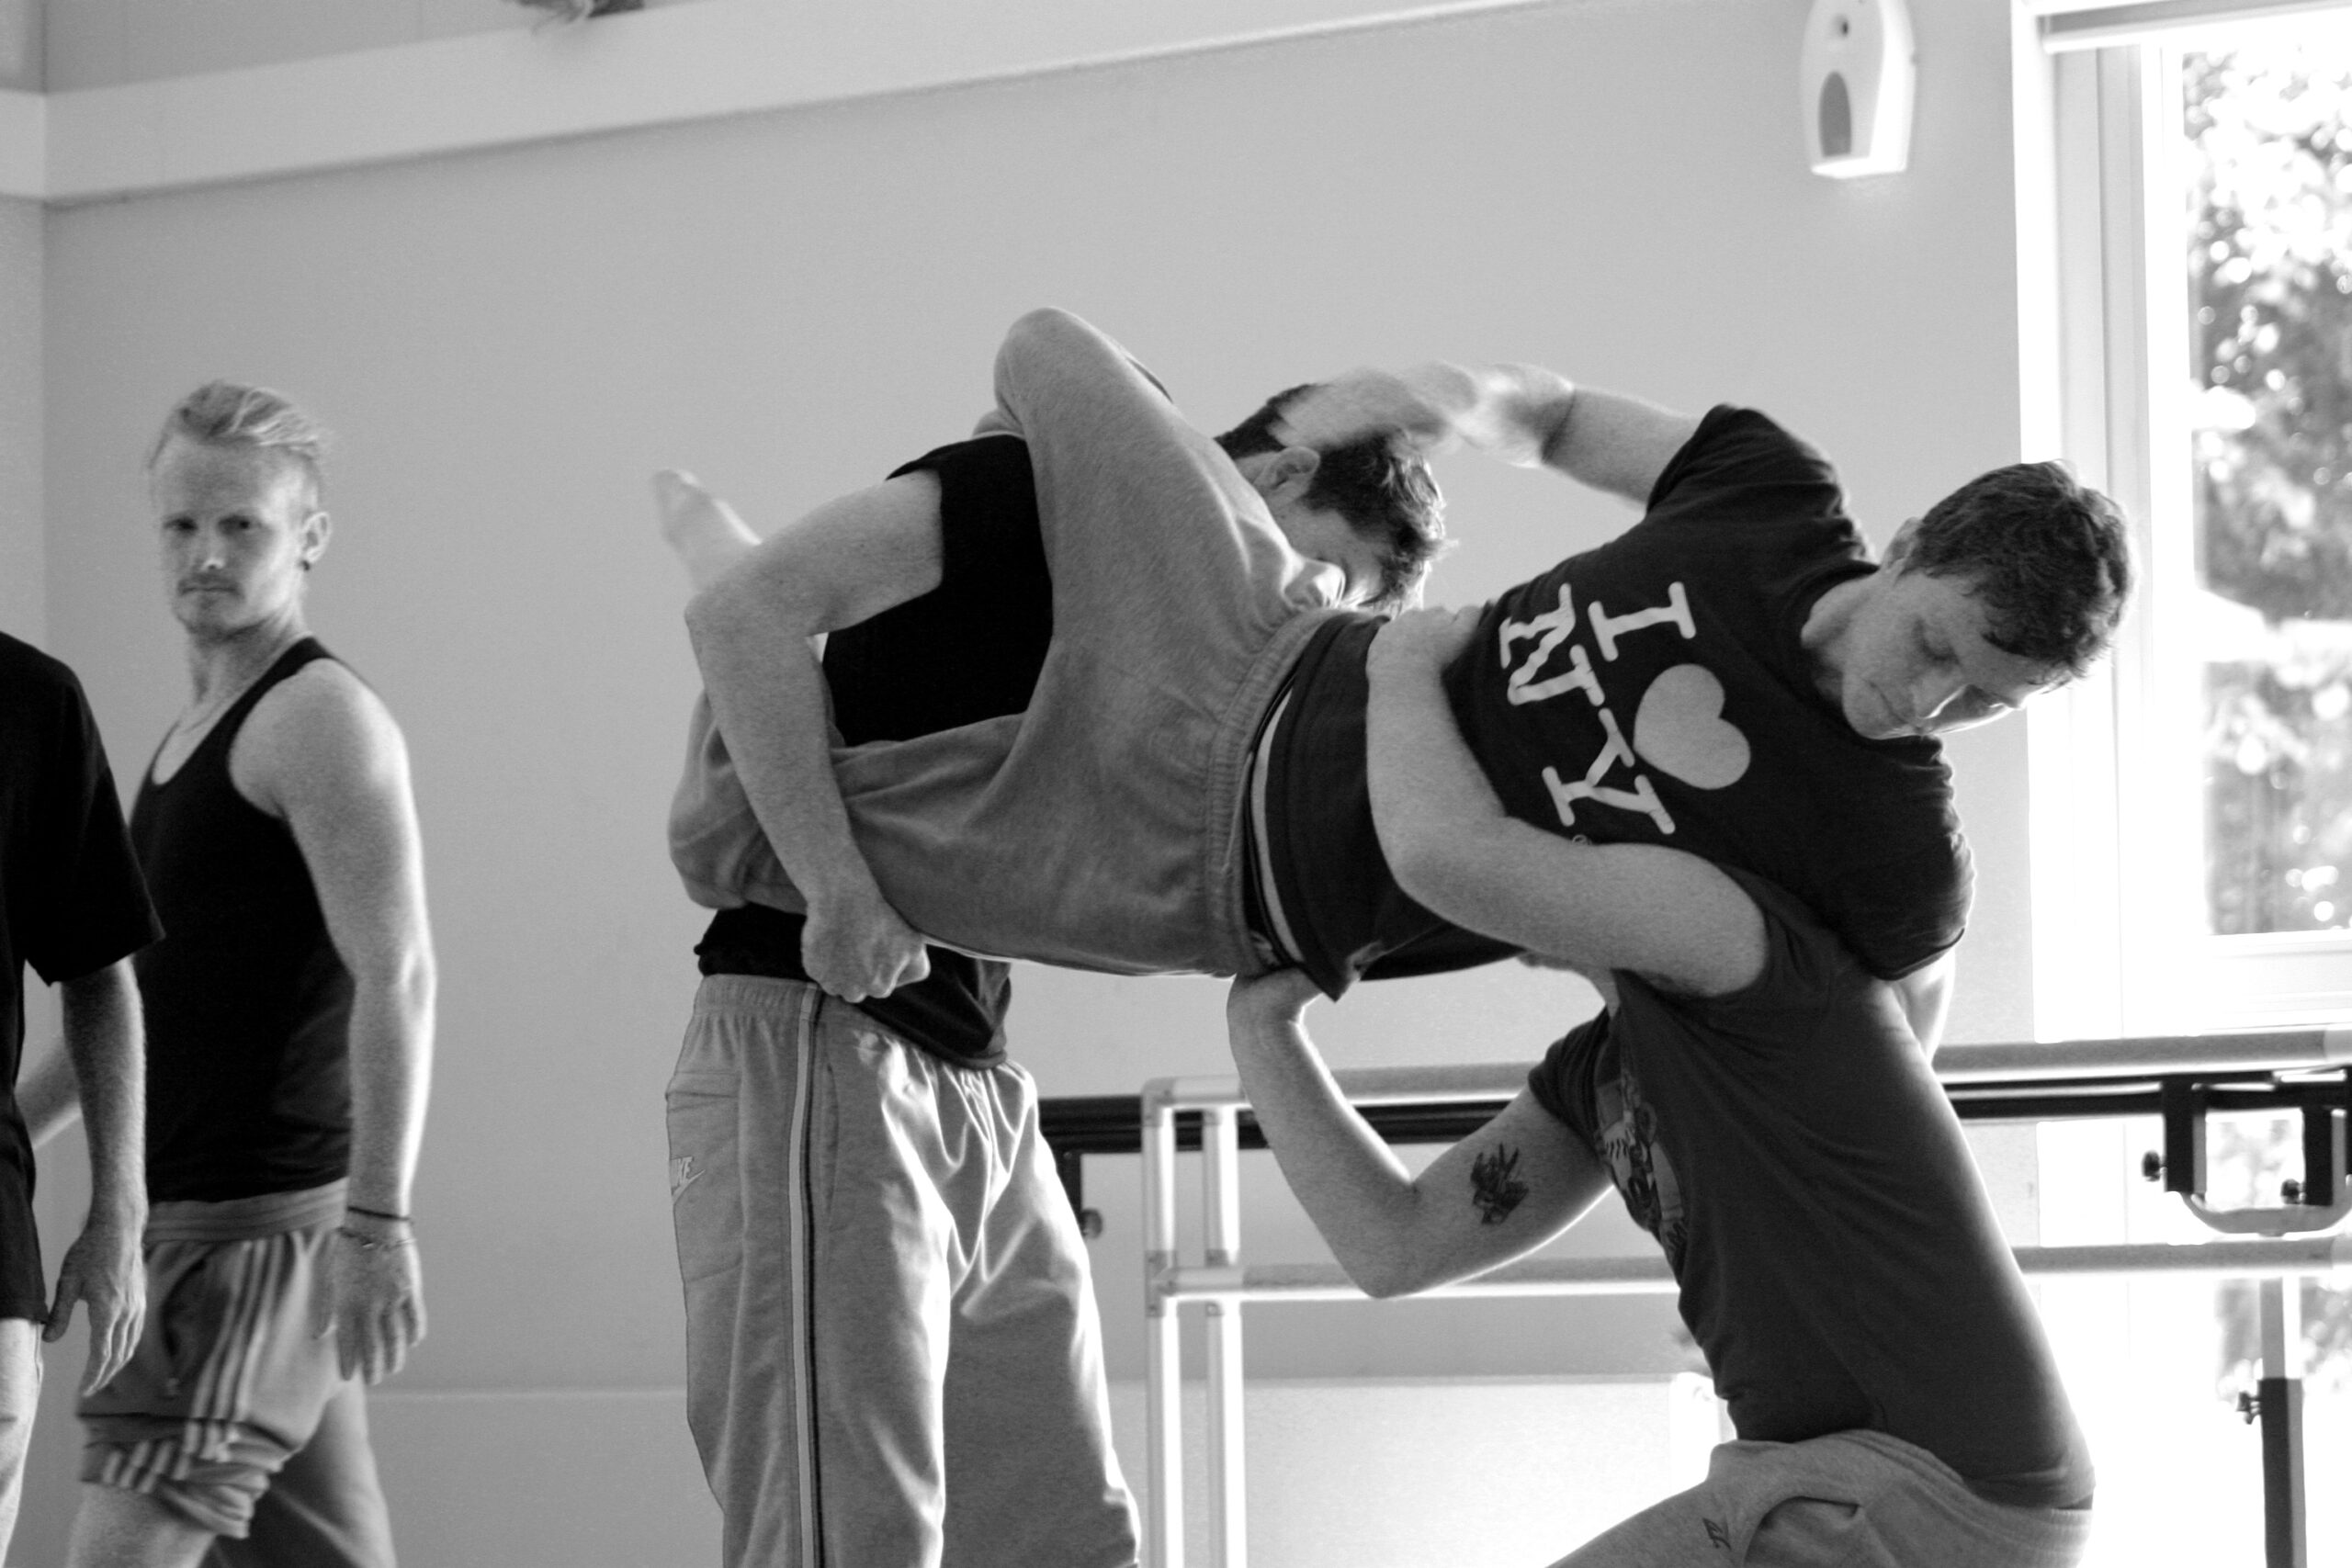 Dancers lifting each other up in rehearsal